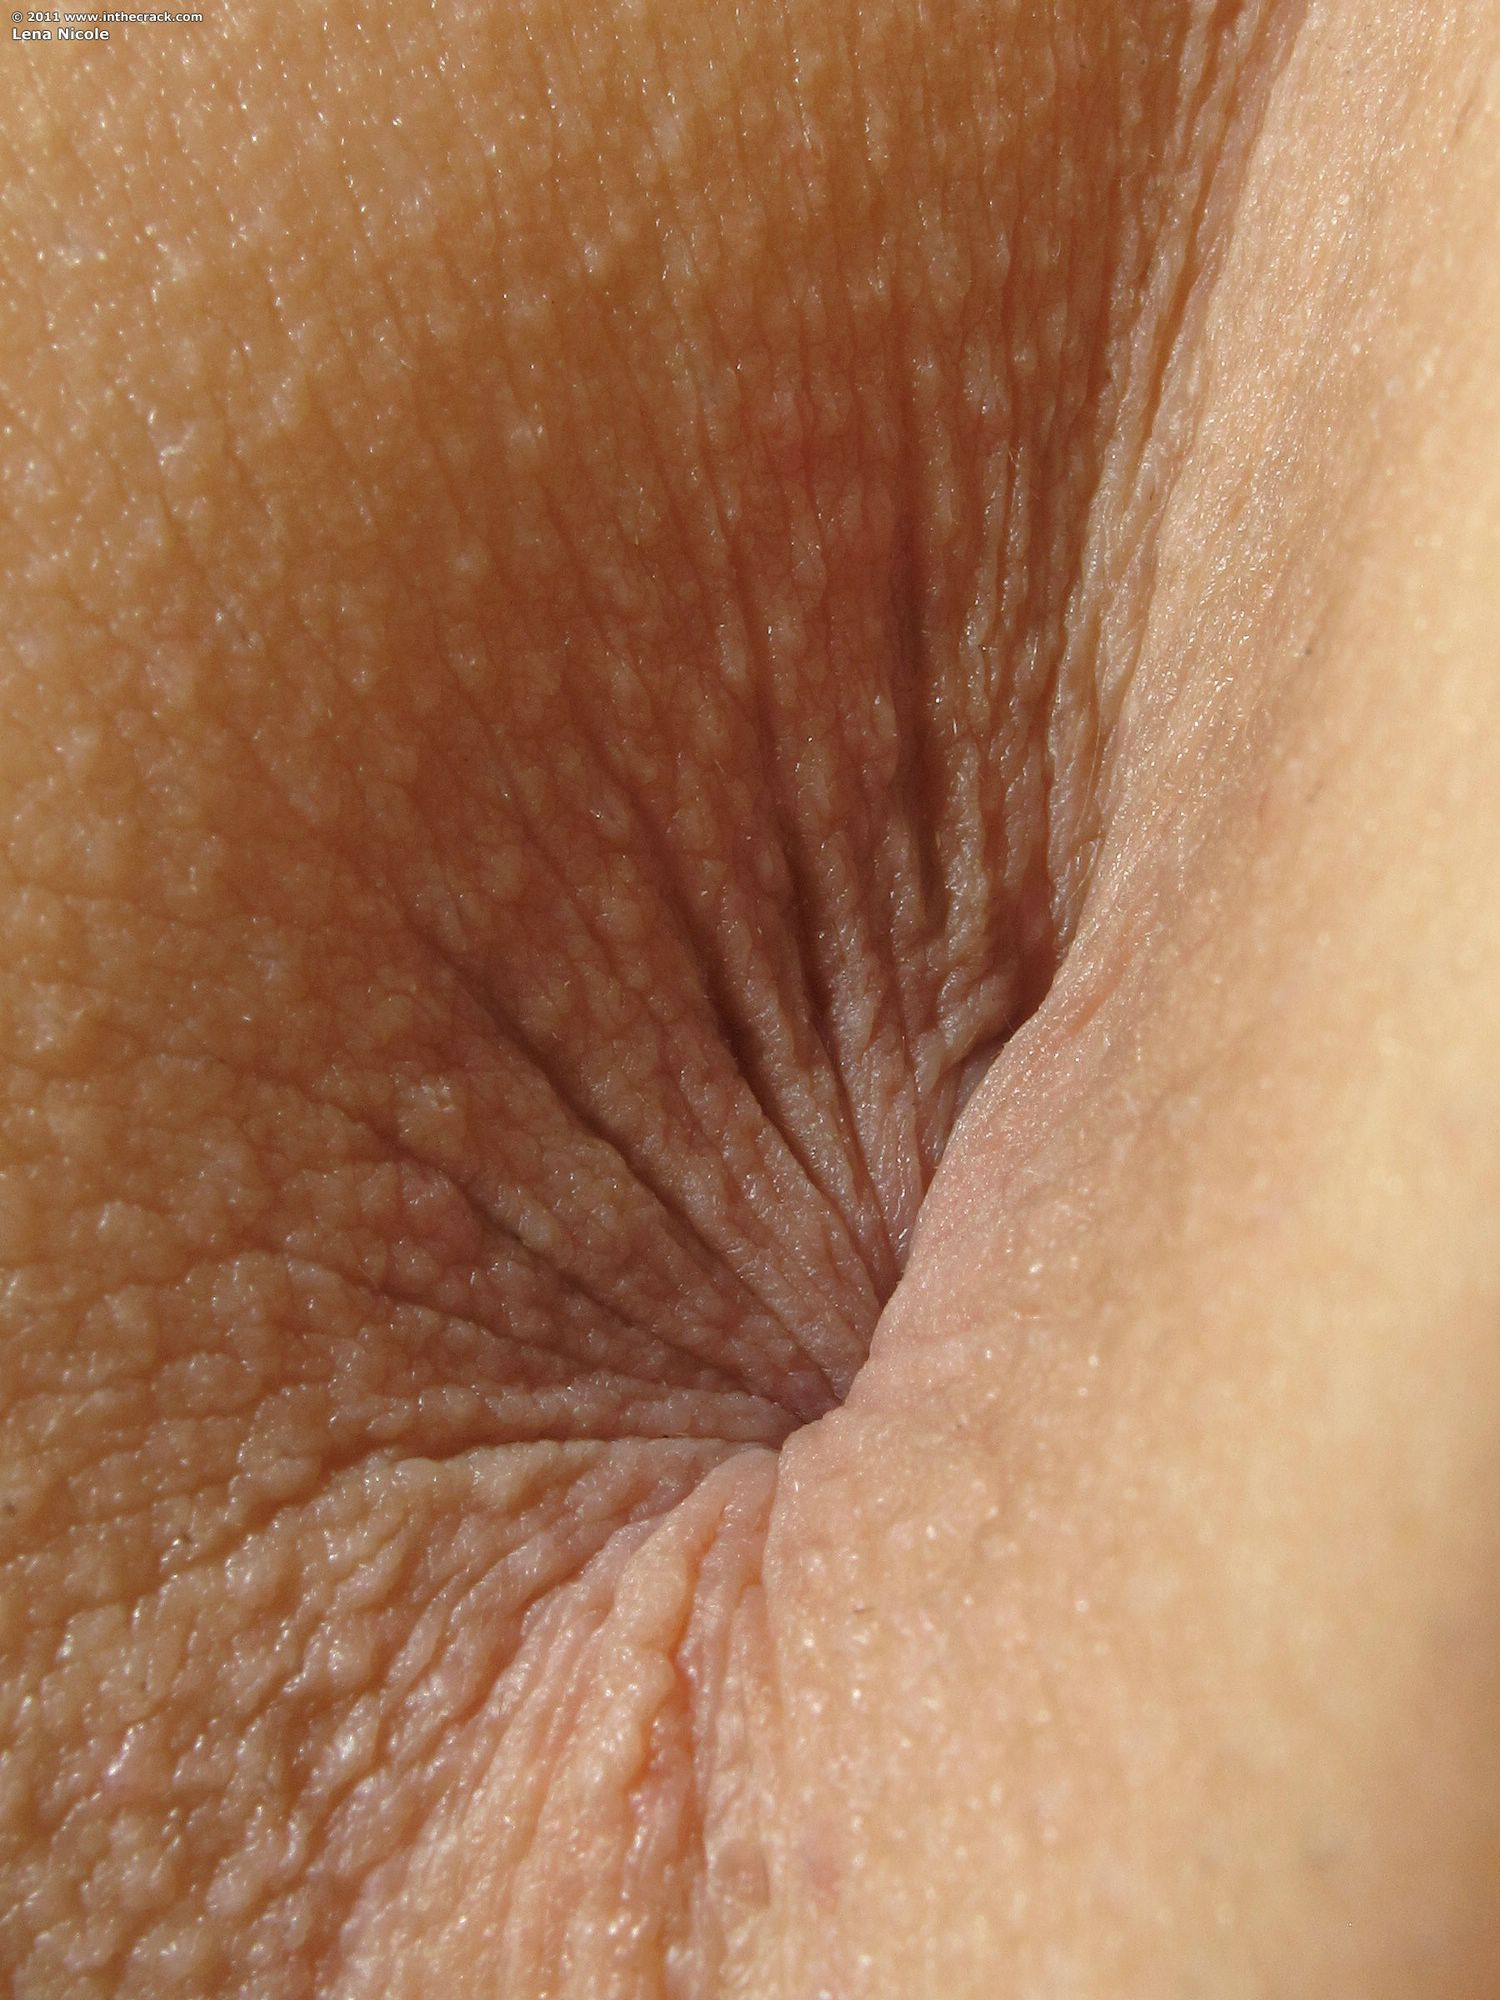 Hot Pussy Close Ups